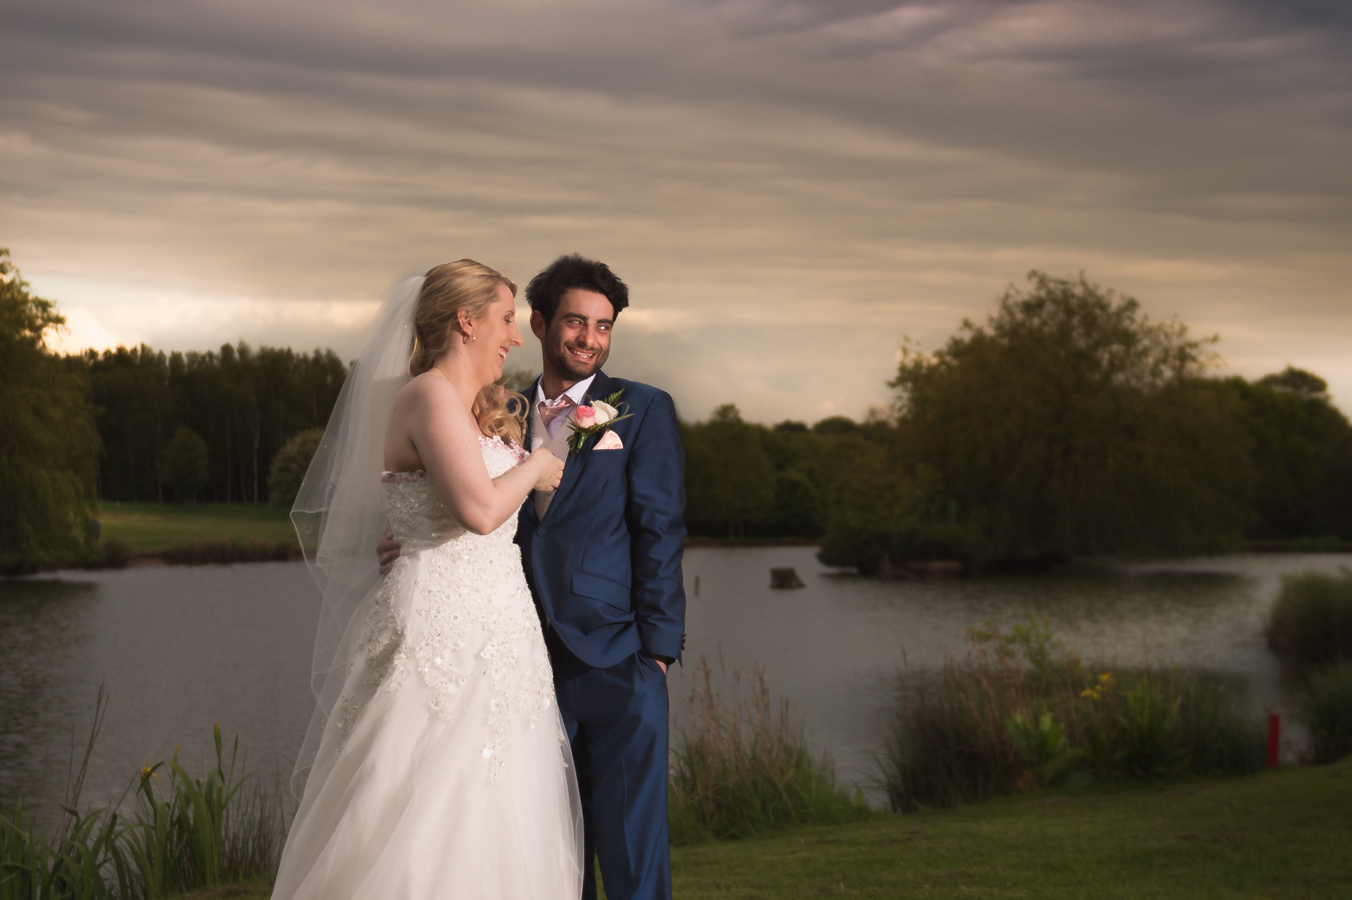 epic, natural and creative wedding photography in west midlands by mk wedding photography